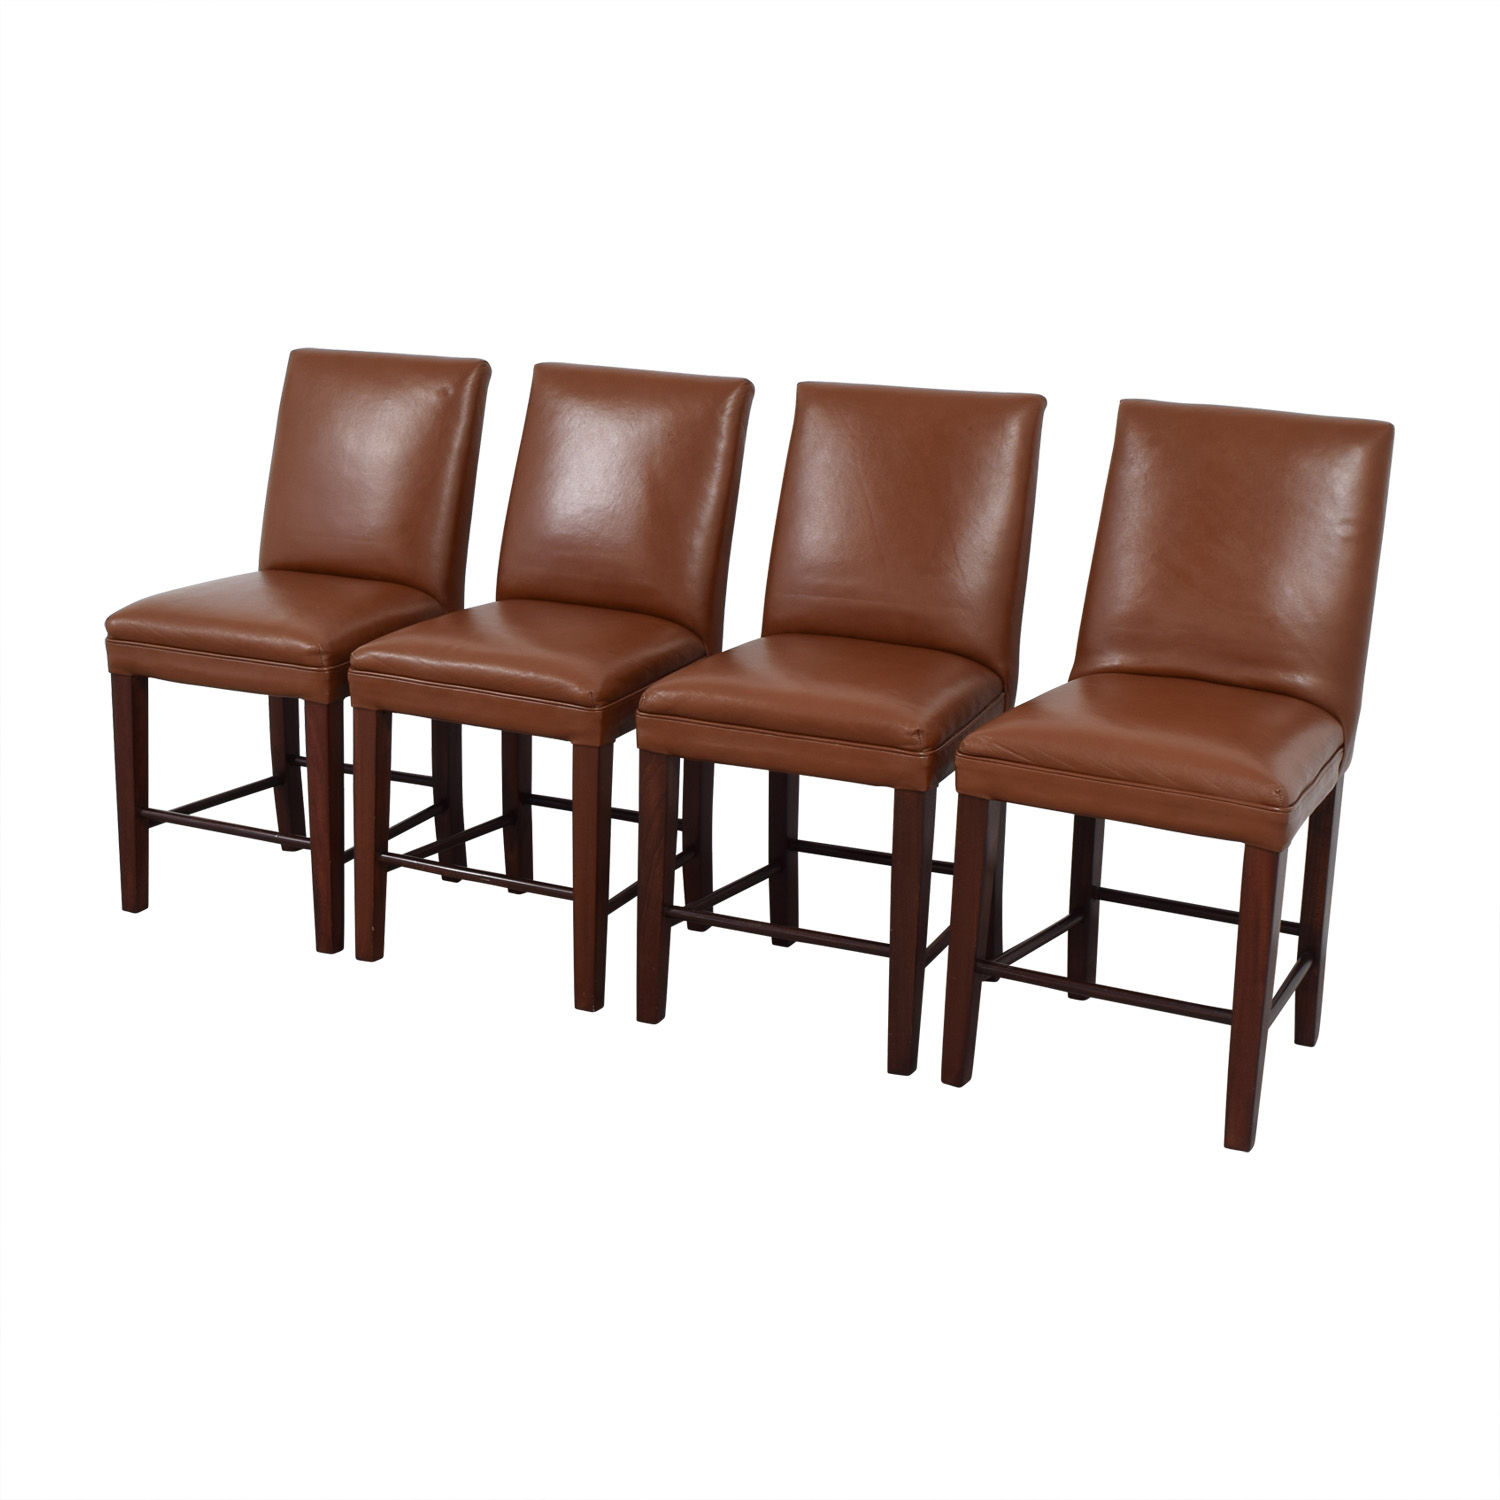 Cognac Leather Dining Chairs dimensions